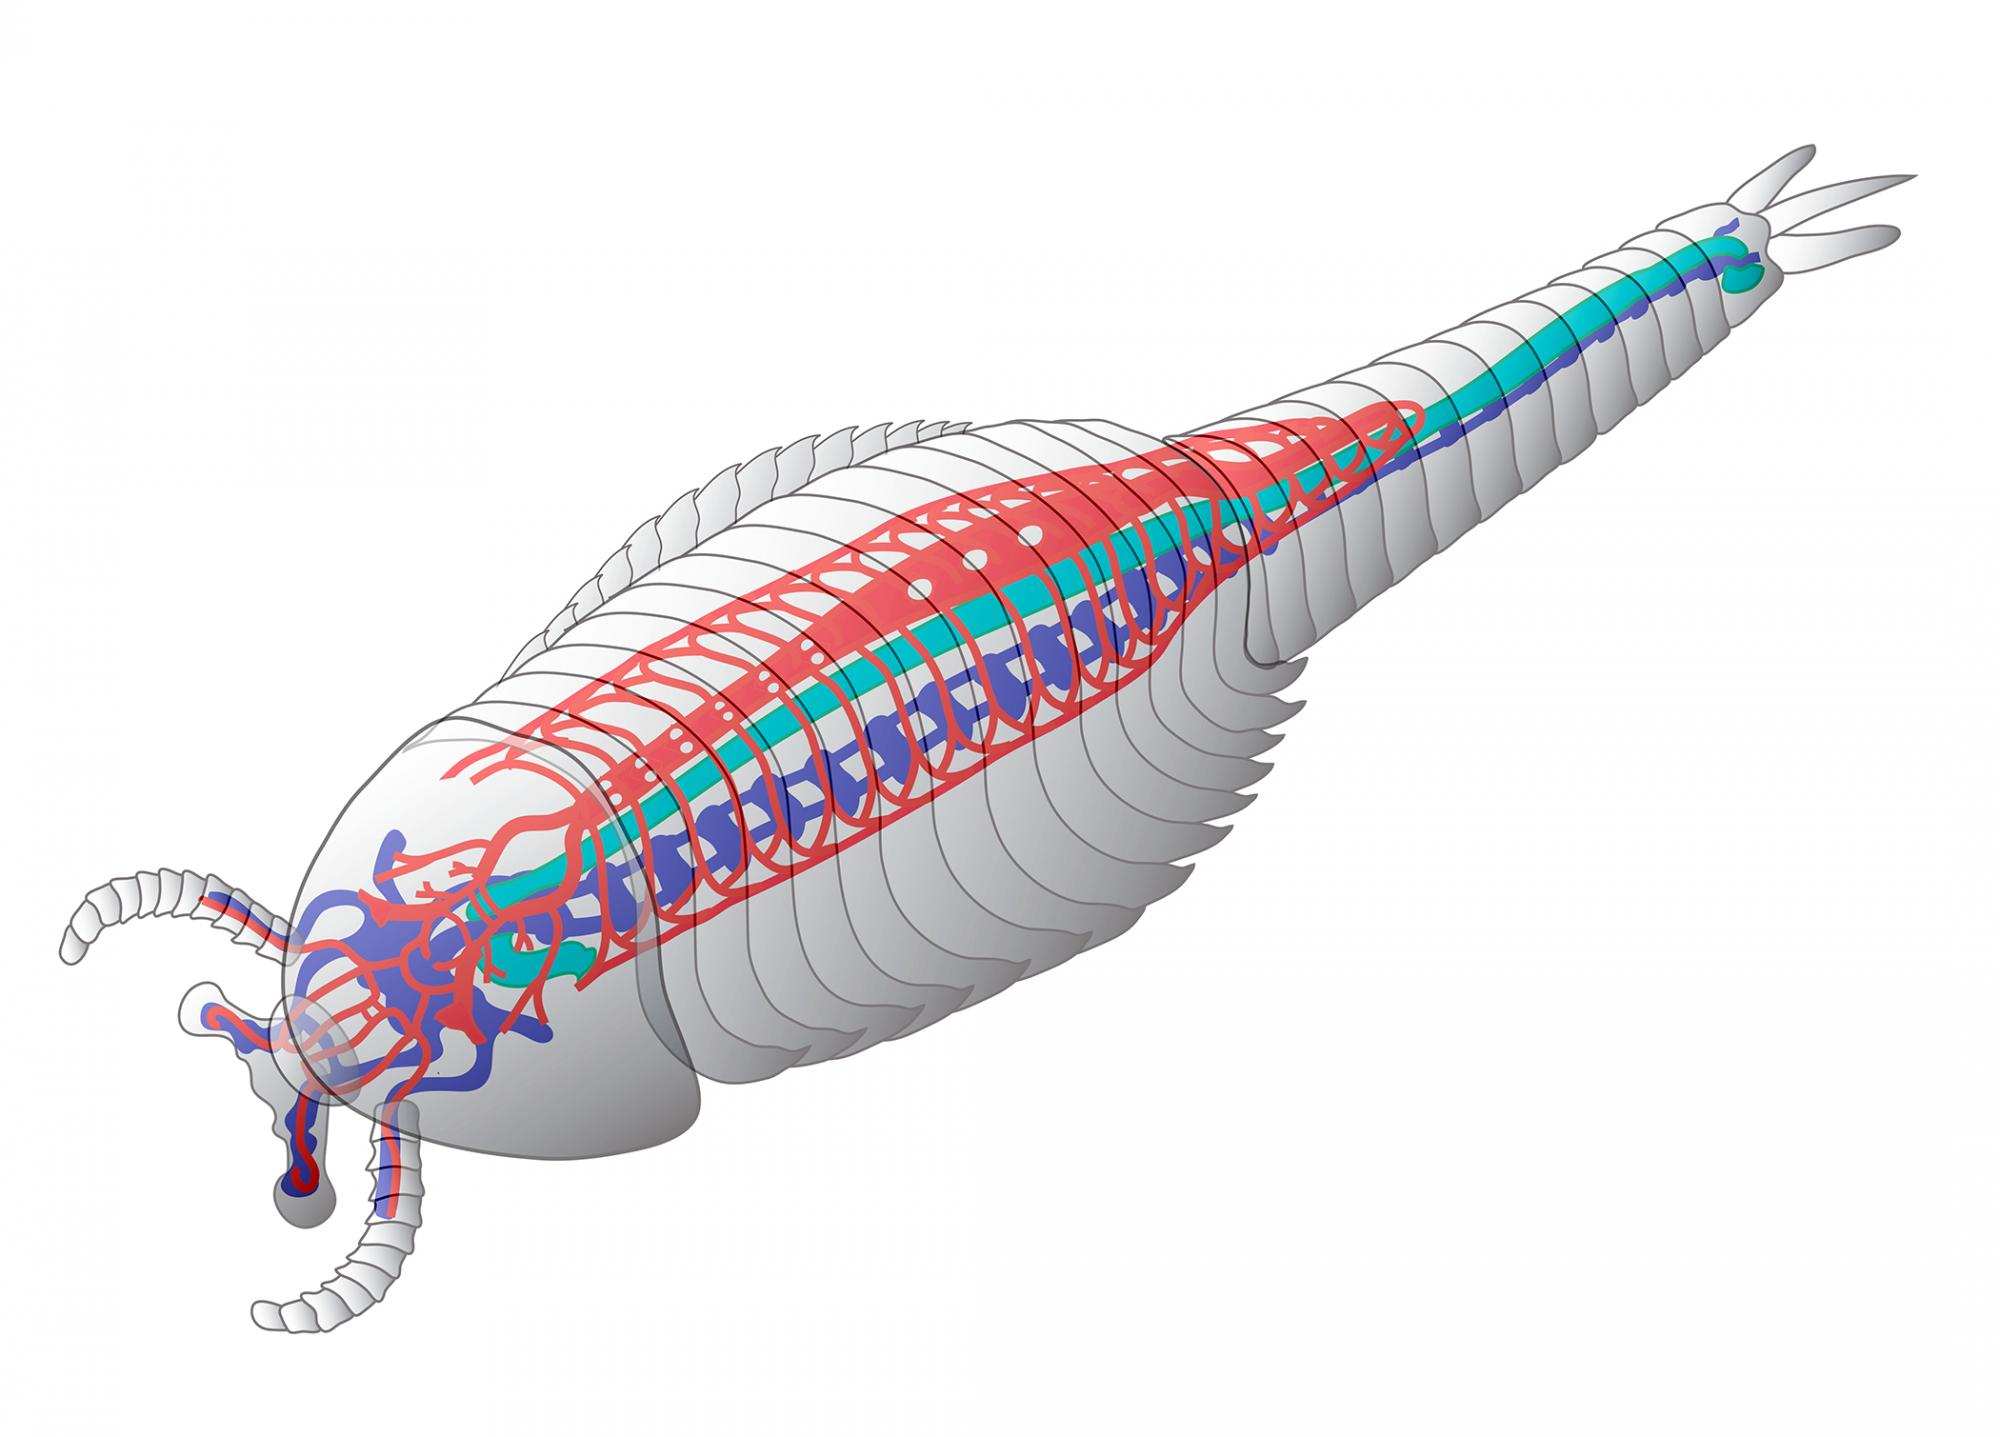 This image shows a schematic reconstruction of the animal, outlining the cardiovascular system in red, the brain and central nervous system in blue and the gut in green.